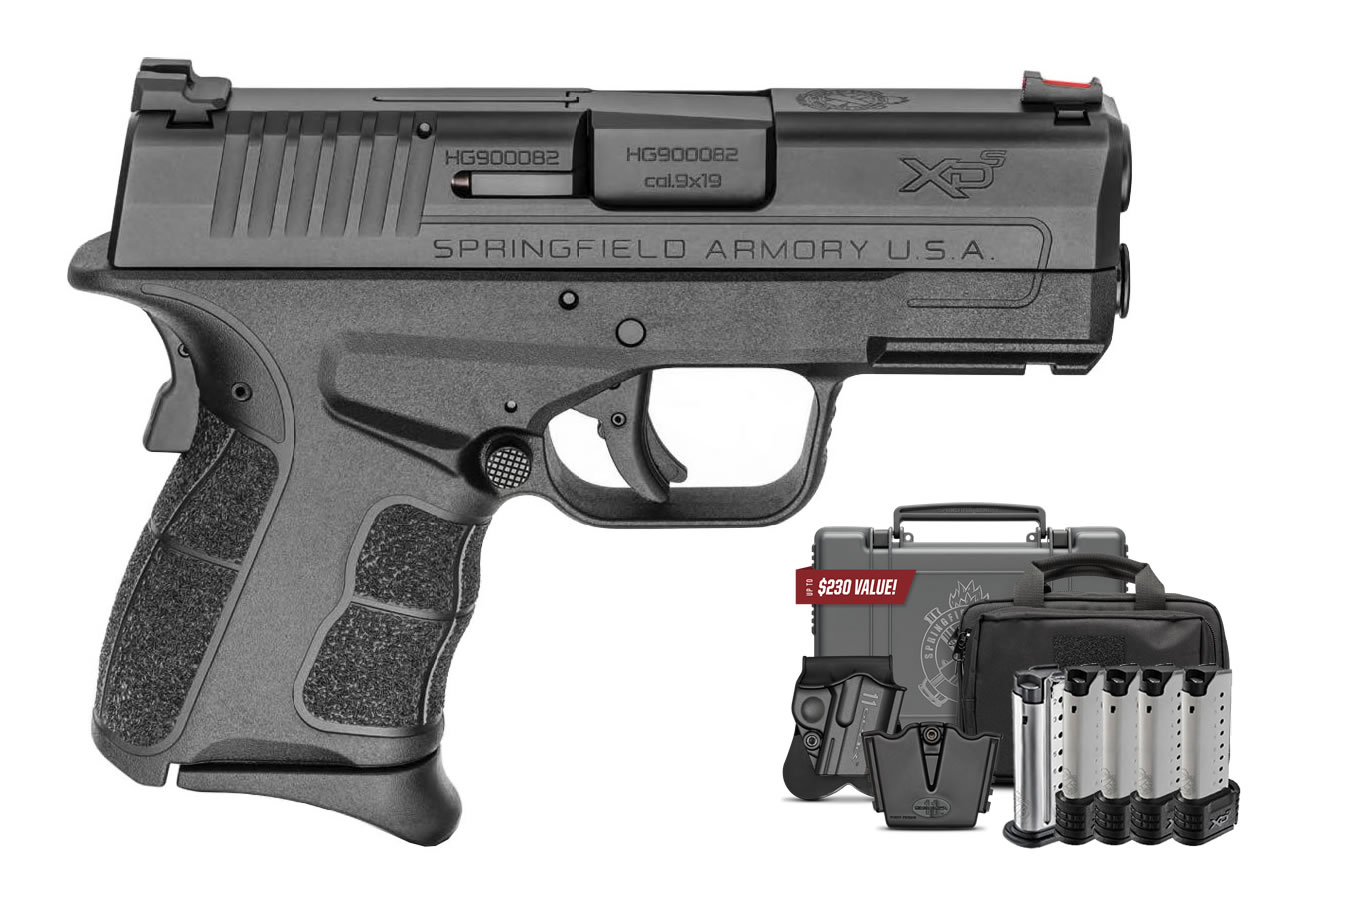 XDS MOD.2 9MM INSTANT GEAR UP PACKAGE